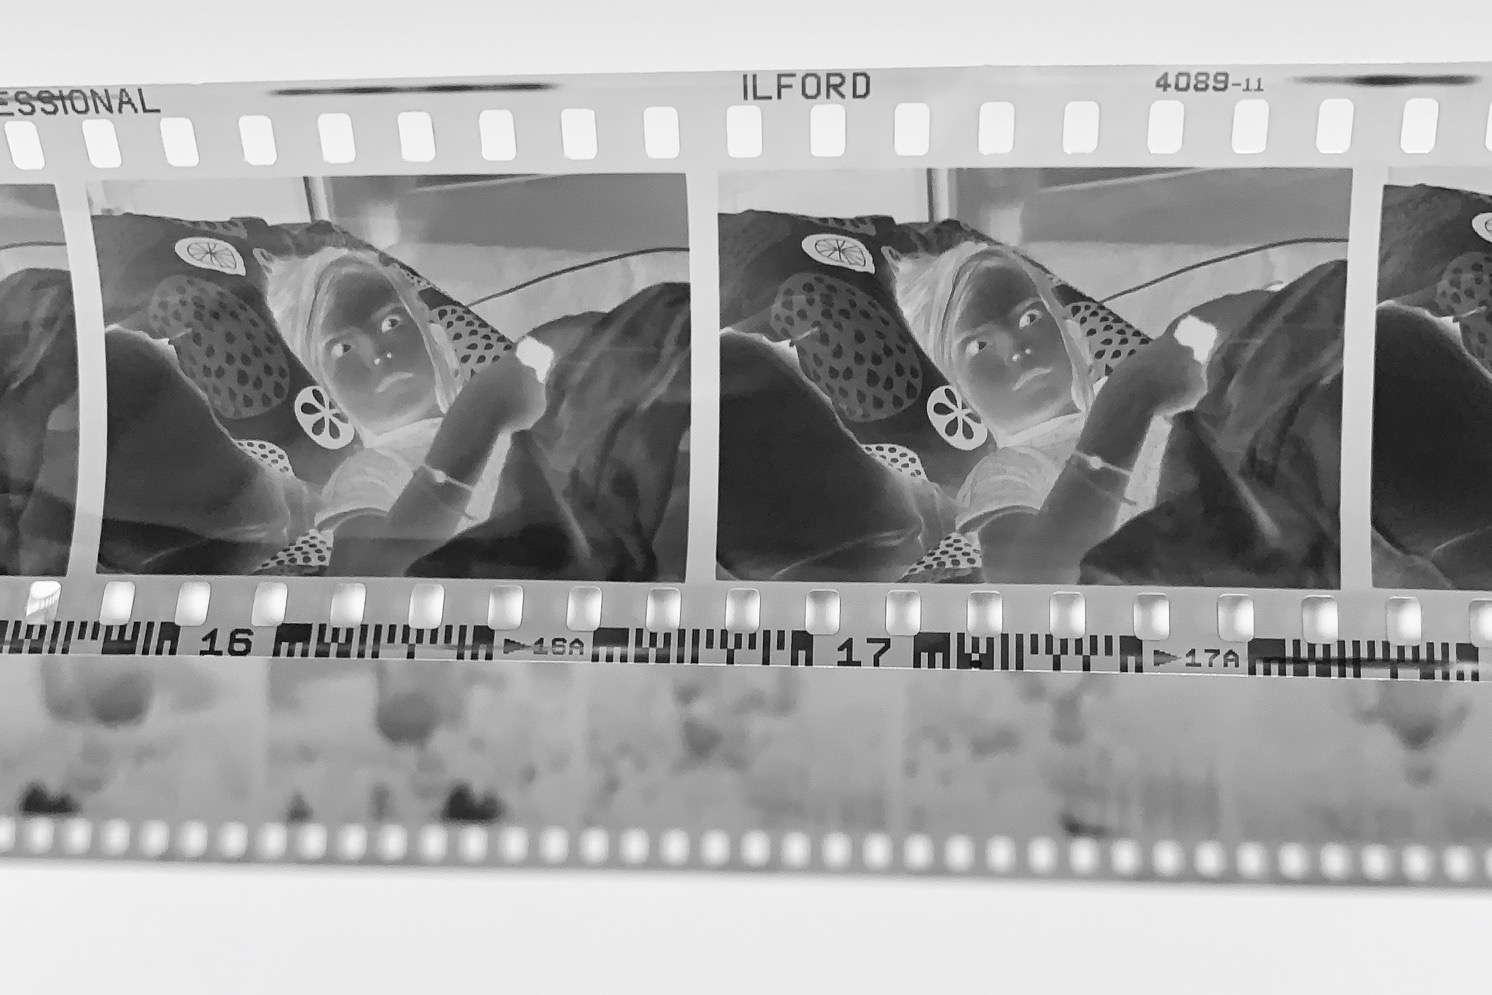 Ilford Delta 400. Note that clear parts in frame and outside frame is quite clear. Very little fog/toning from the caffenol developing, while the dark areas on film (highligts when positive) are both dense and detailed.